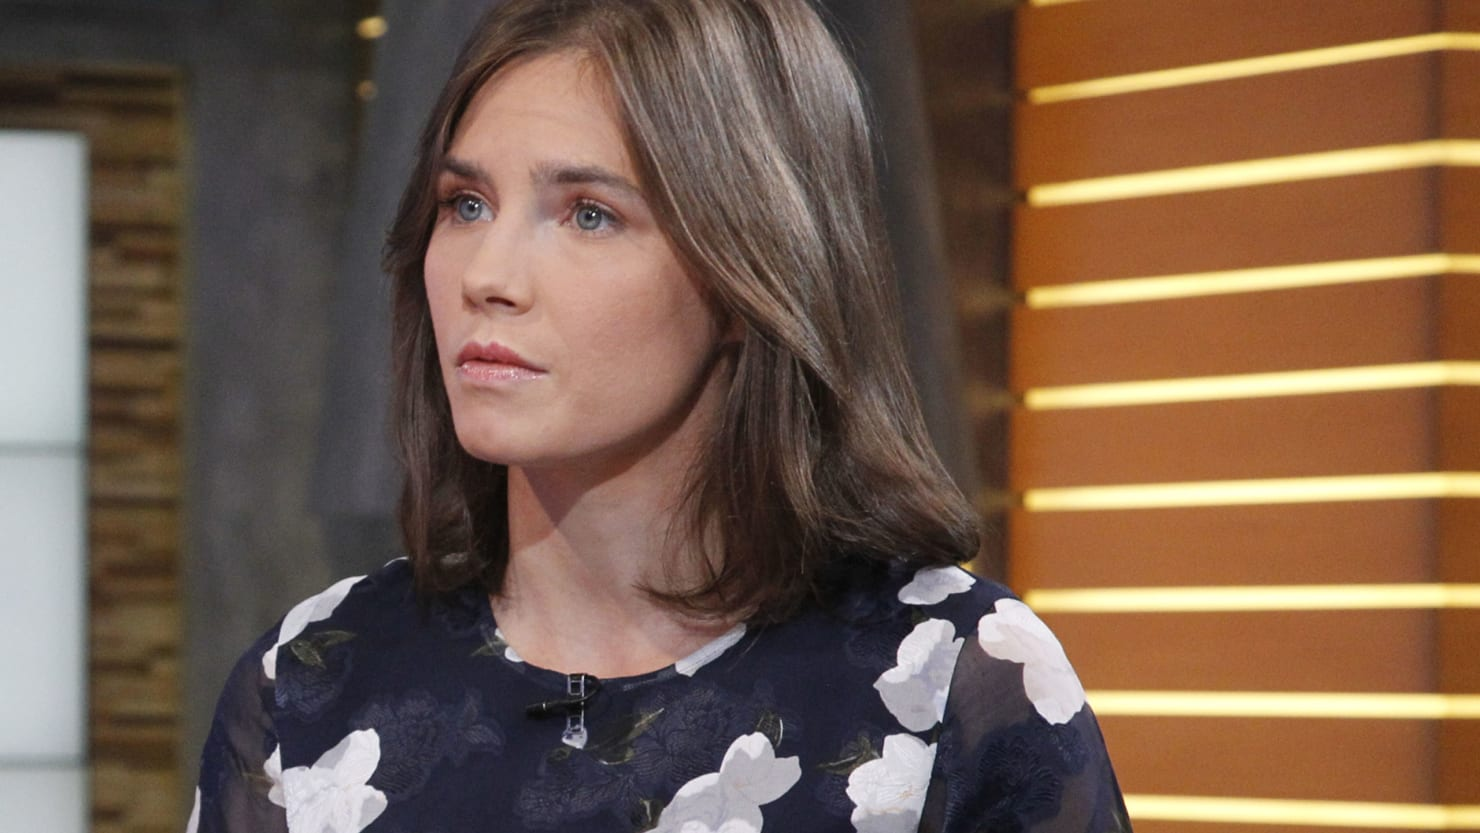 A Decade Later: Amanda Knox Plans Her Return to the Scene of Meredith Kercher's Murder